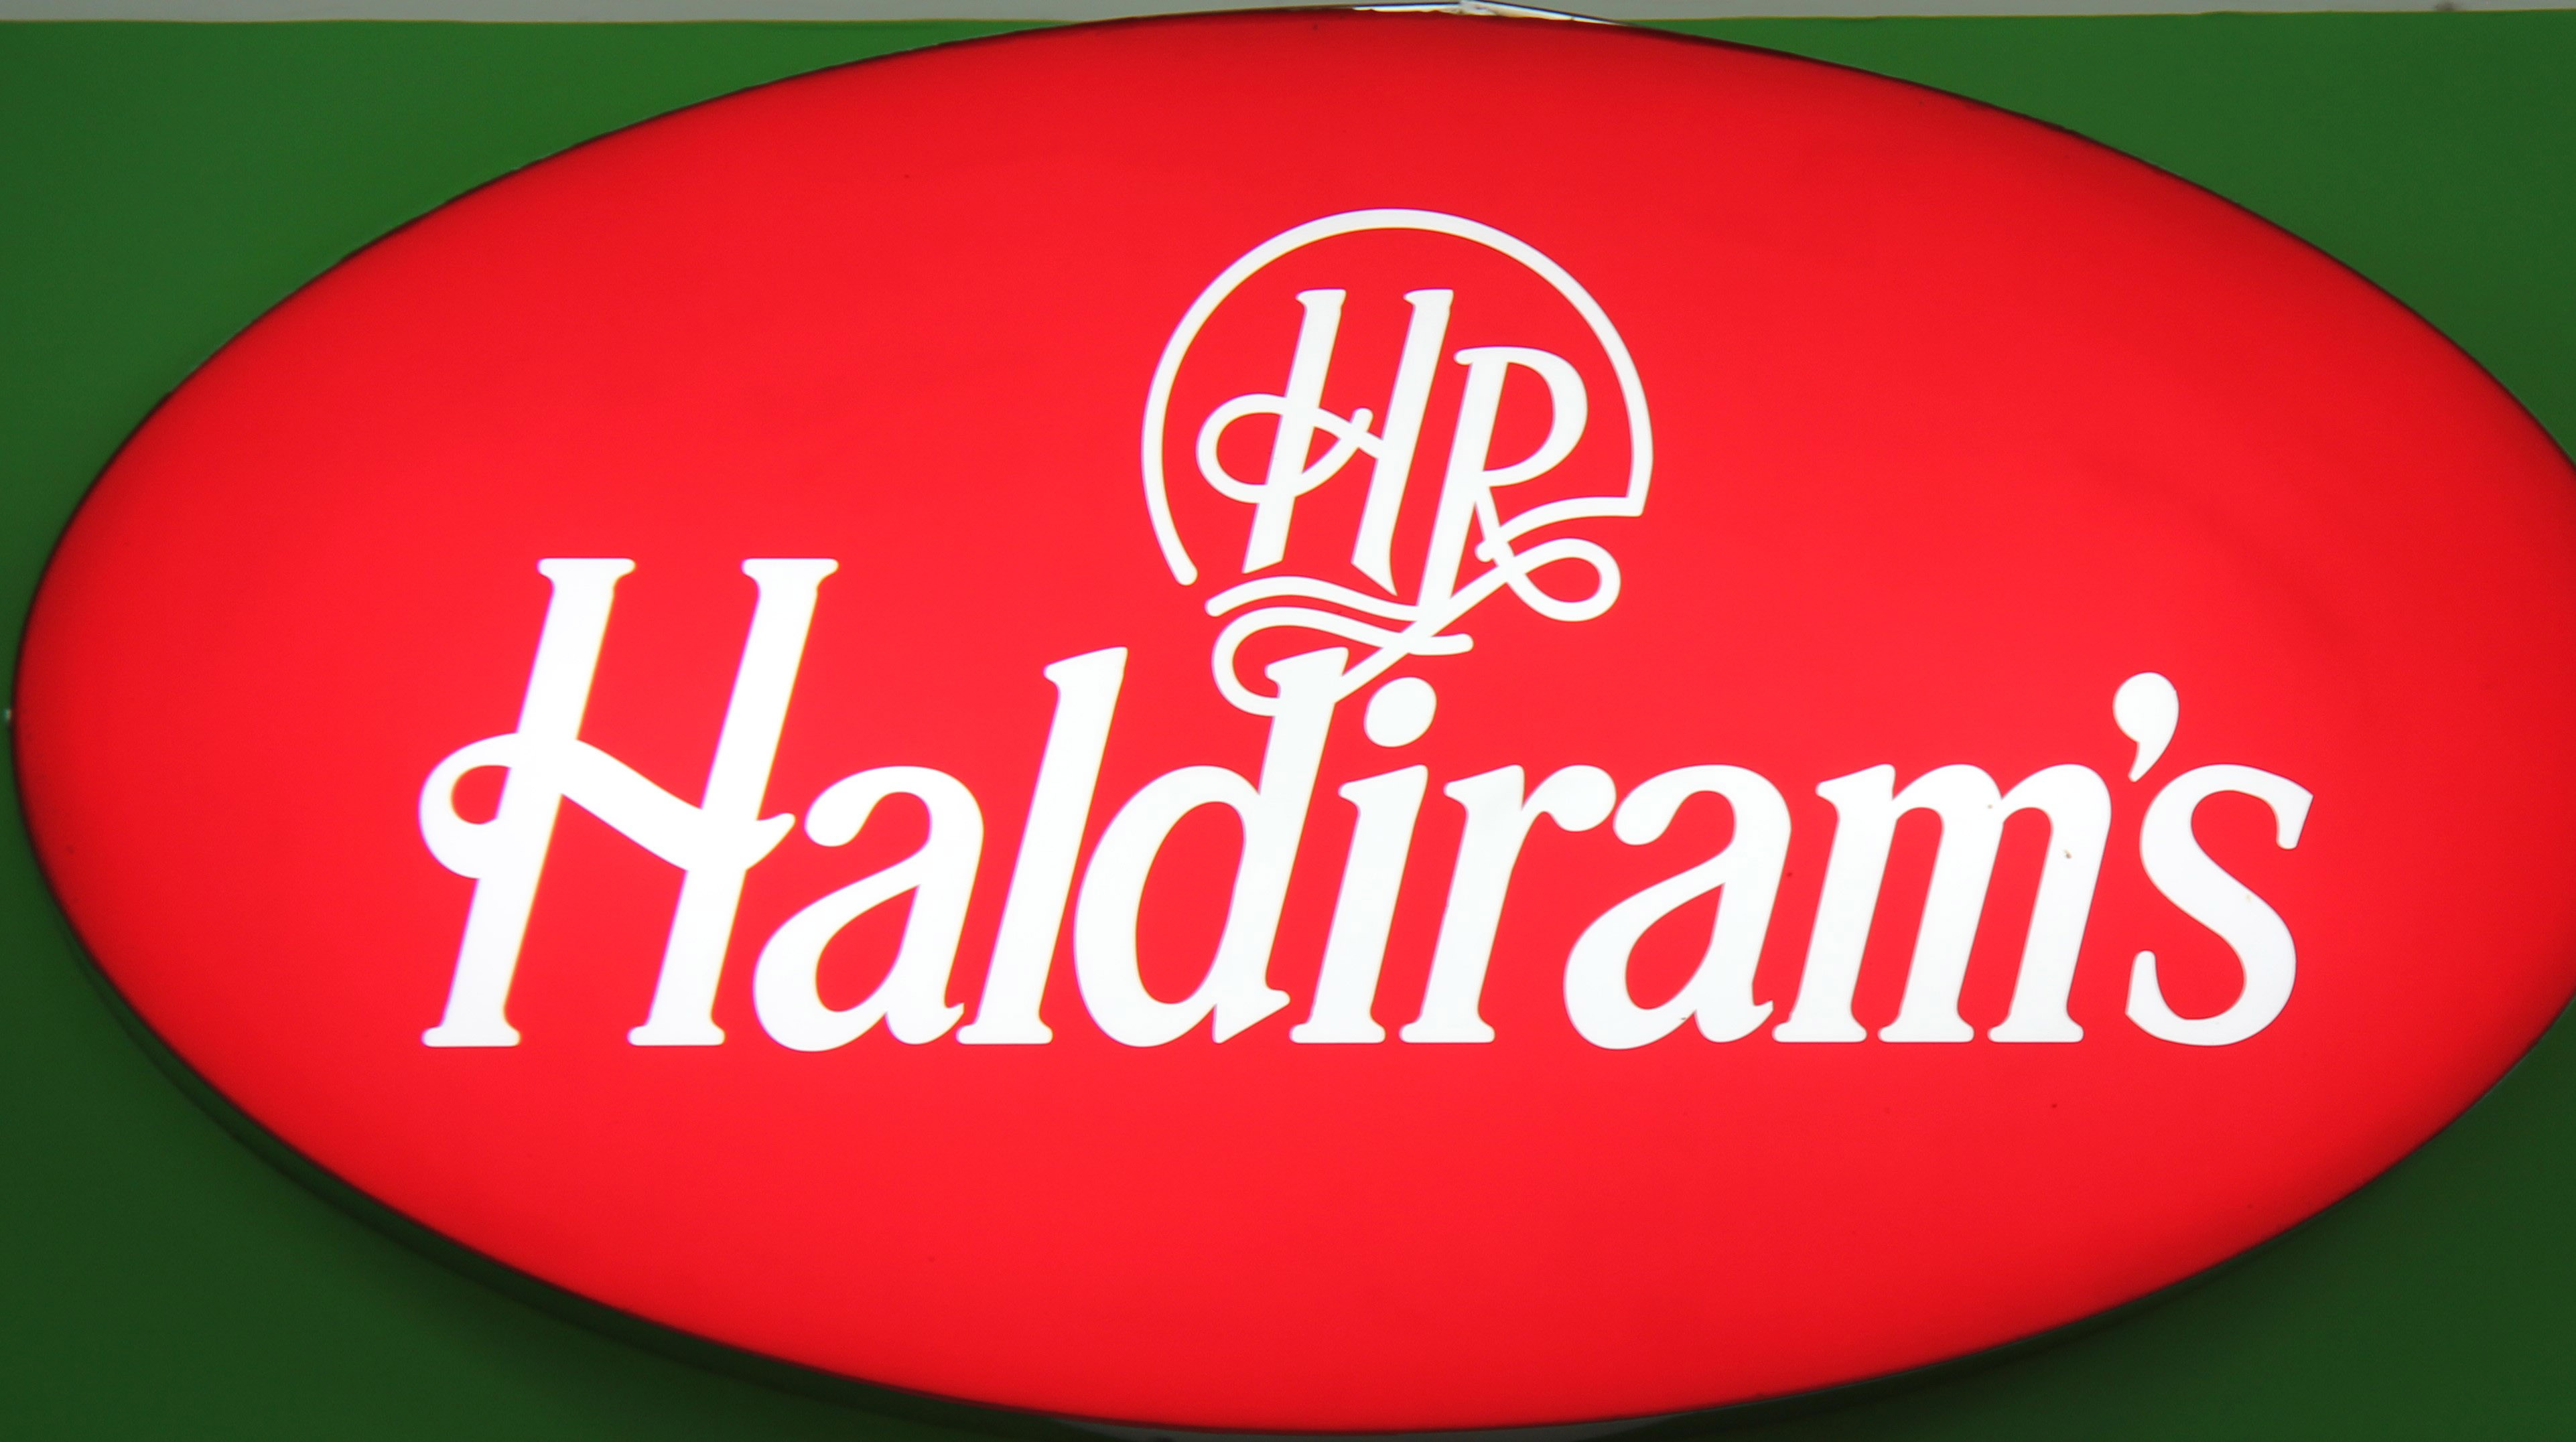 Haldiram grown twice the size of Hindustan Unilever's packaged food division